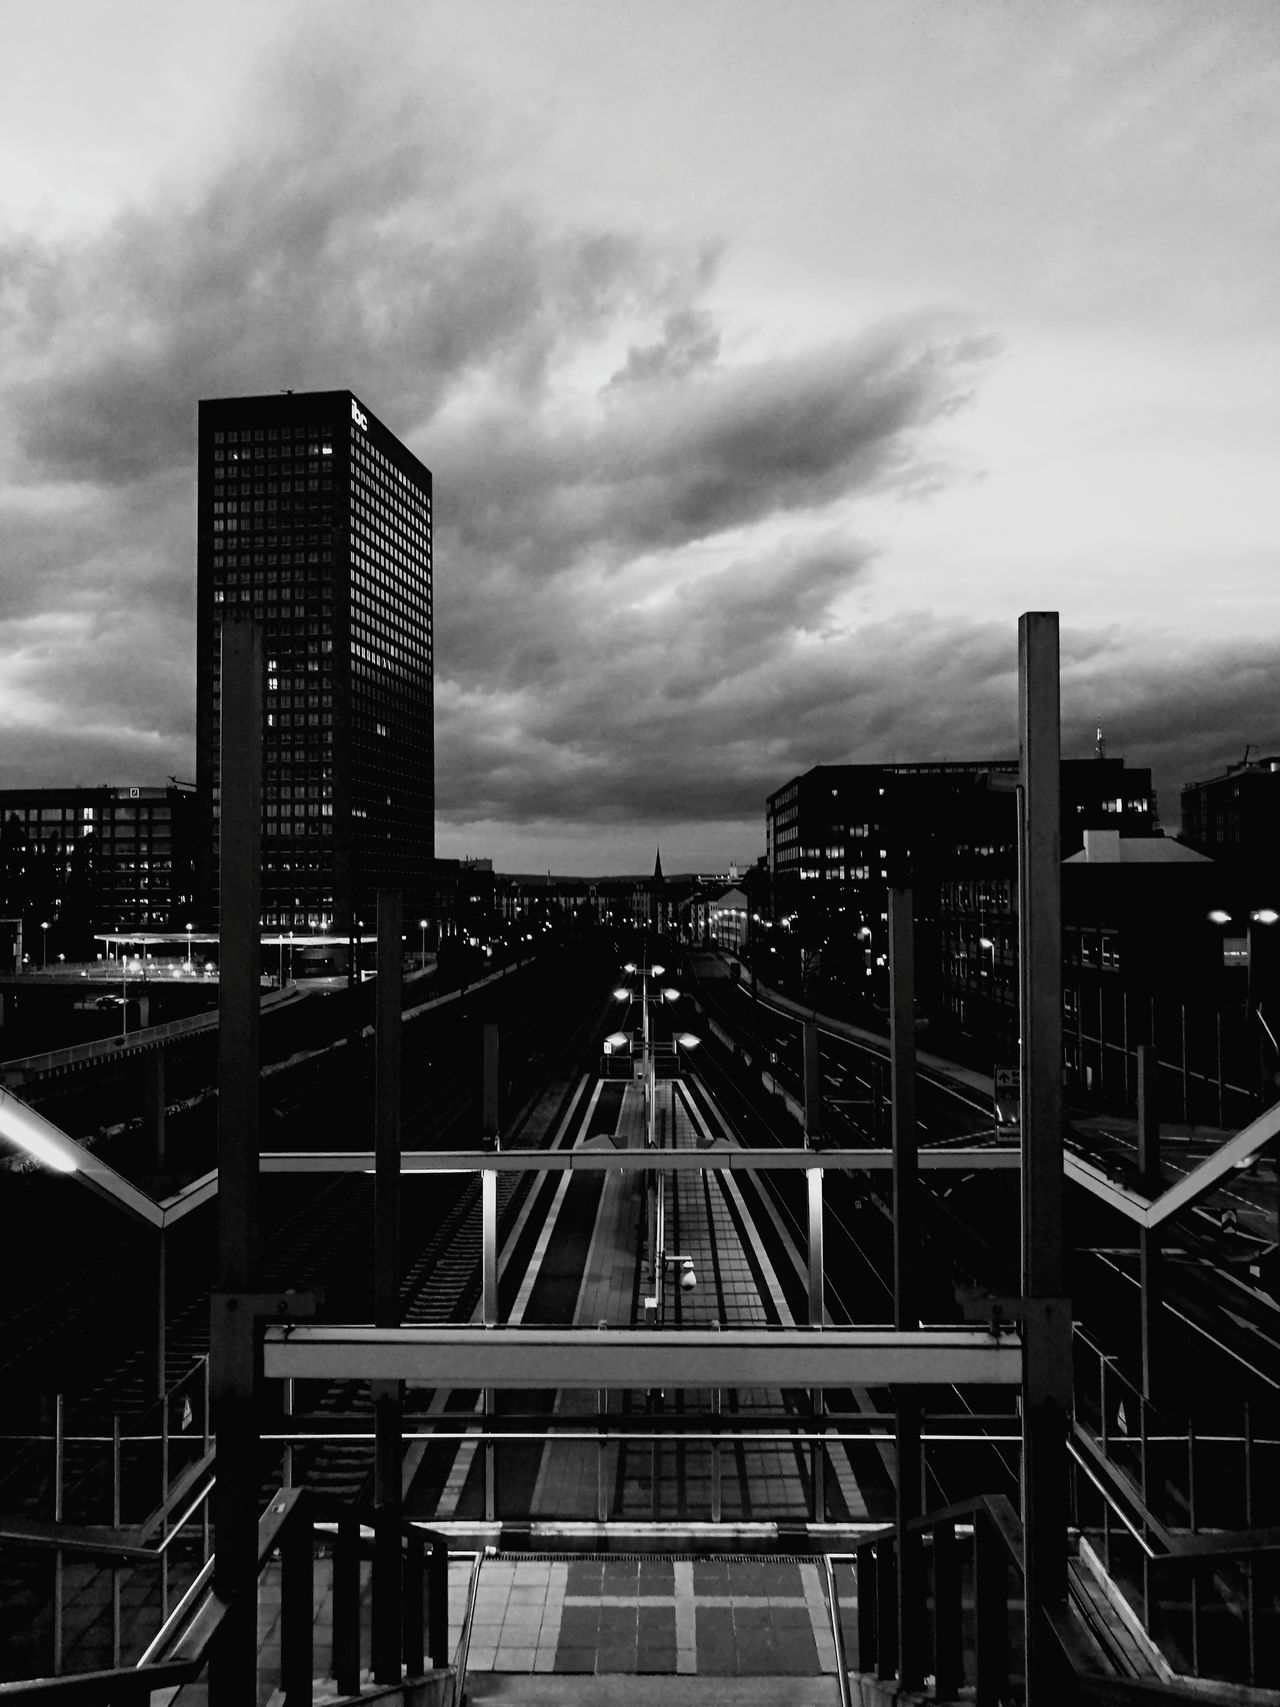 City Cloud - Sky Illuminated Cityscape Urban Skyline Blackandwhite Black And White Black & White Station Platform Urban Landscape Welcome To Black Sky Sky And Clouds Evening Evening Sky Evening Light The Architect - 2017 EyeEm Awards